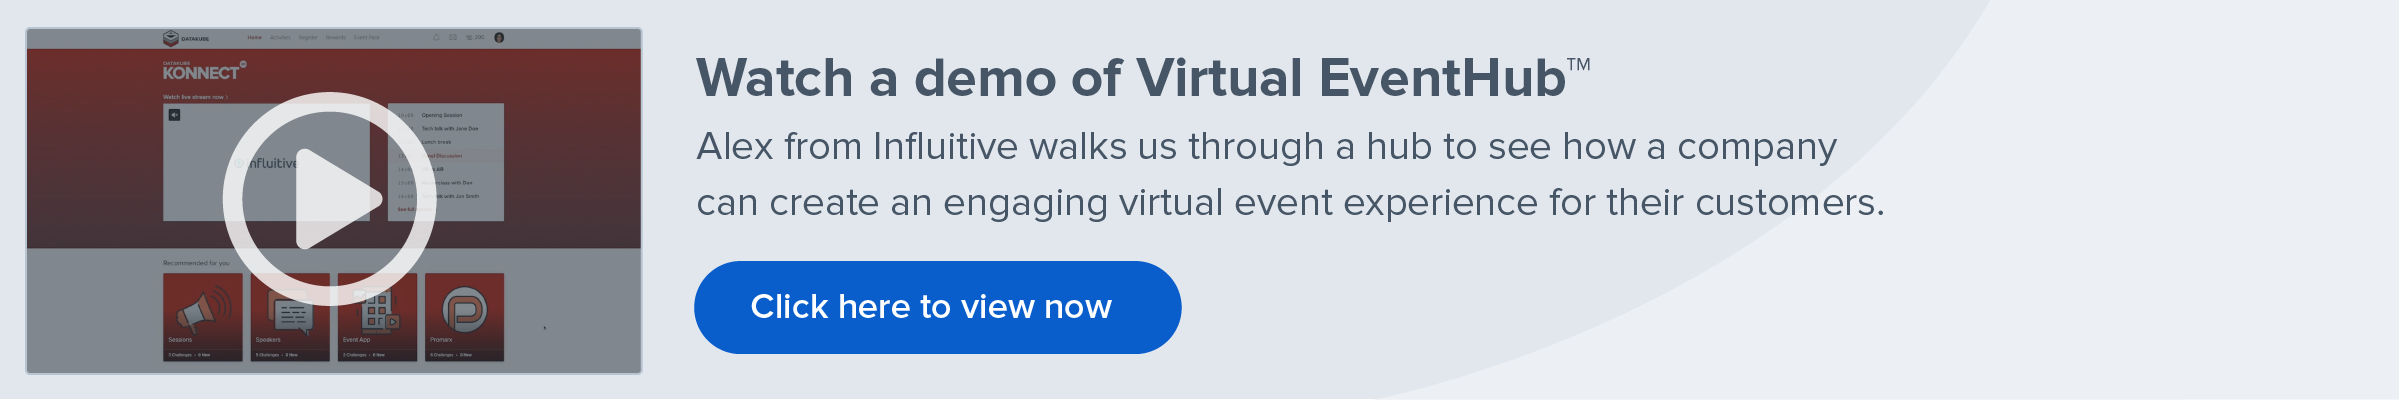 Virtual EventHub Demo